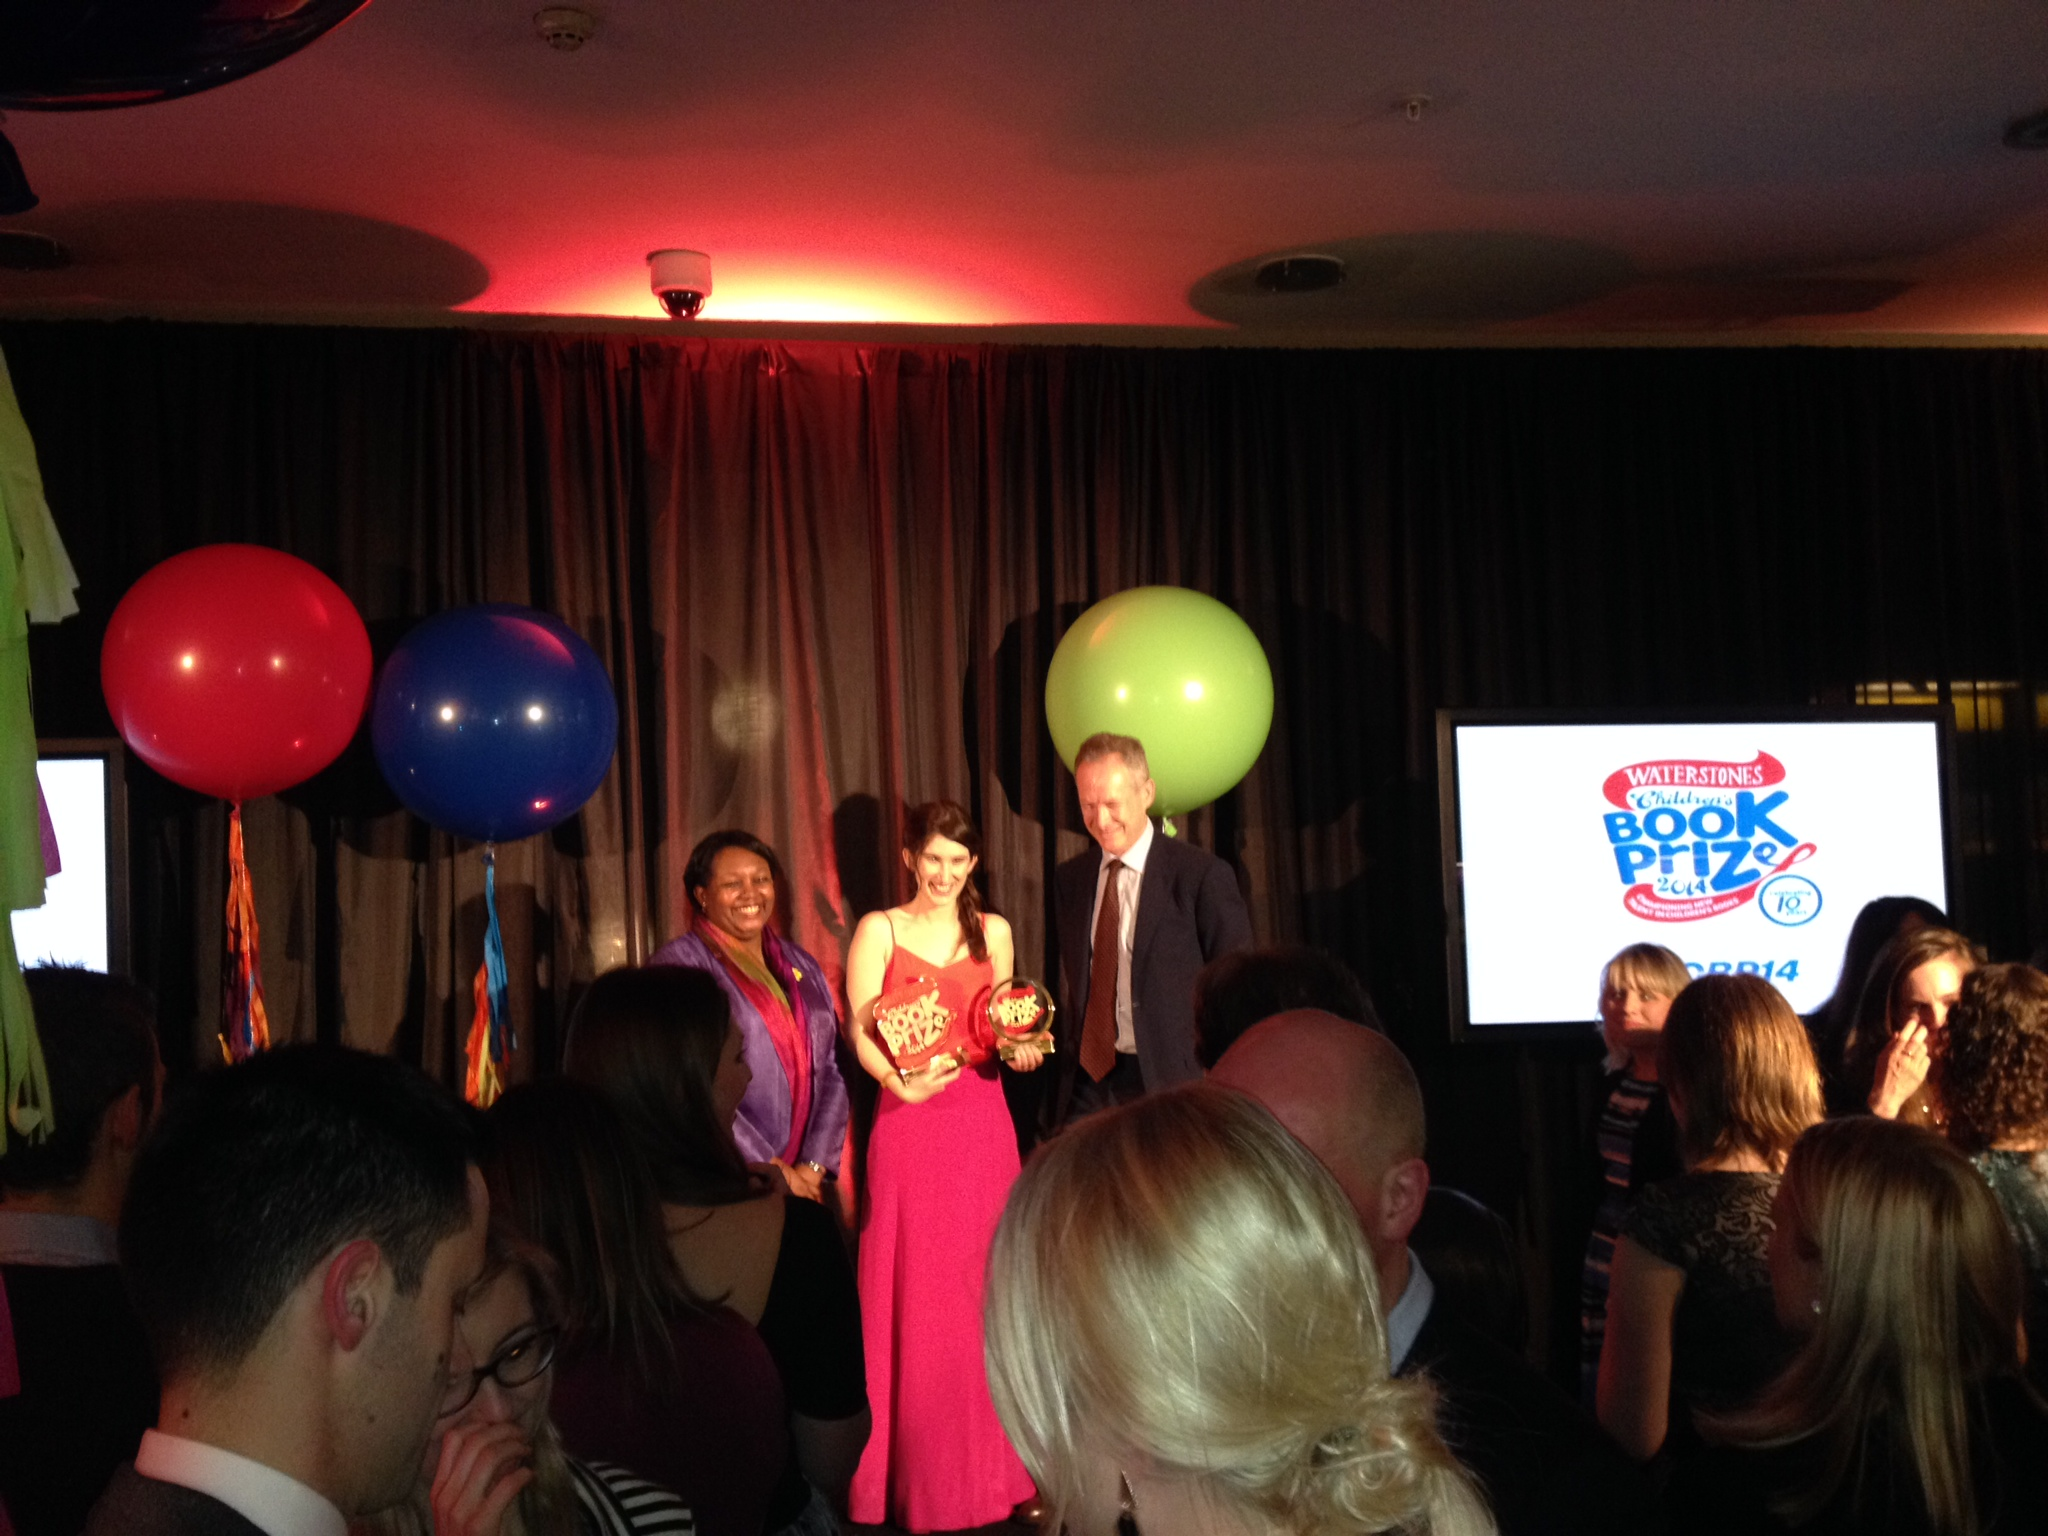 Katherine Rundell, author of Rooftoppers, collects her prize. Congratulations, Katherine!